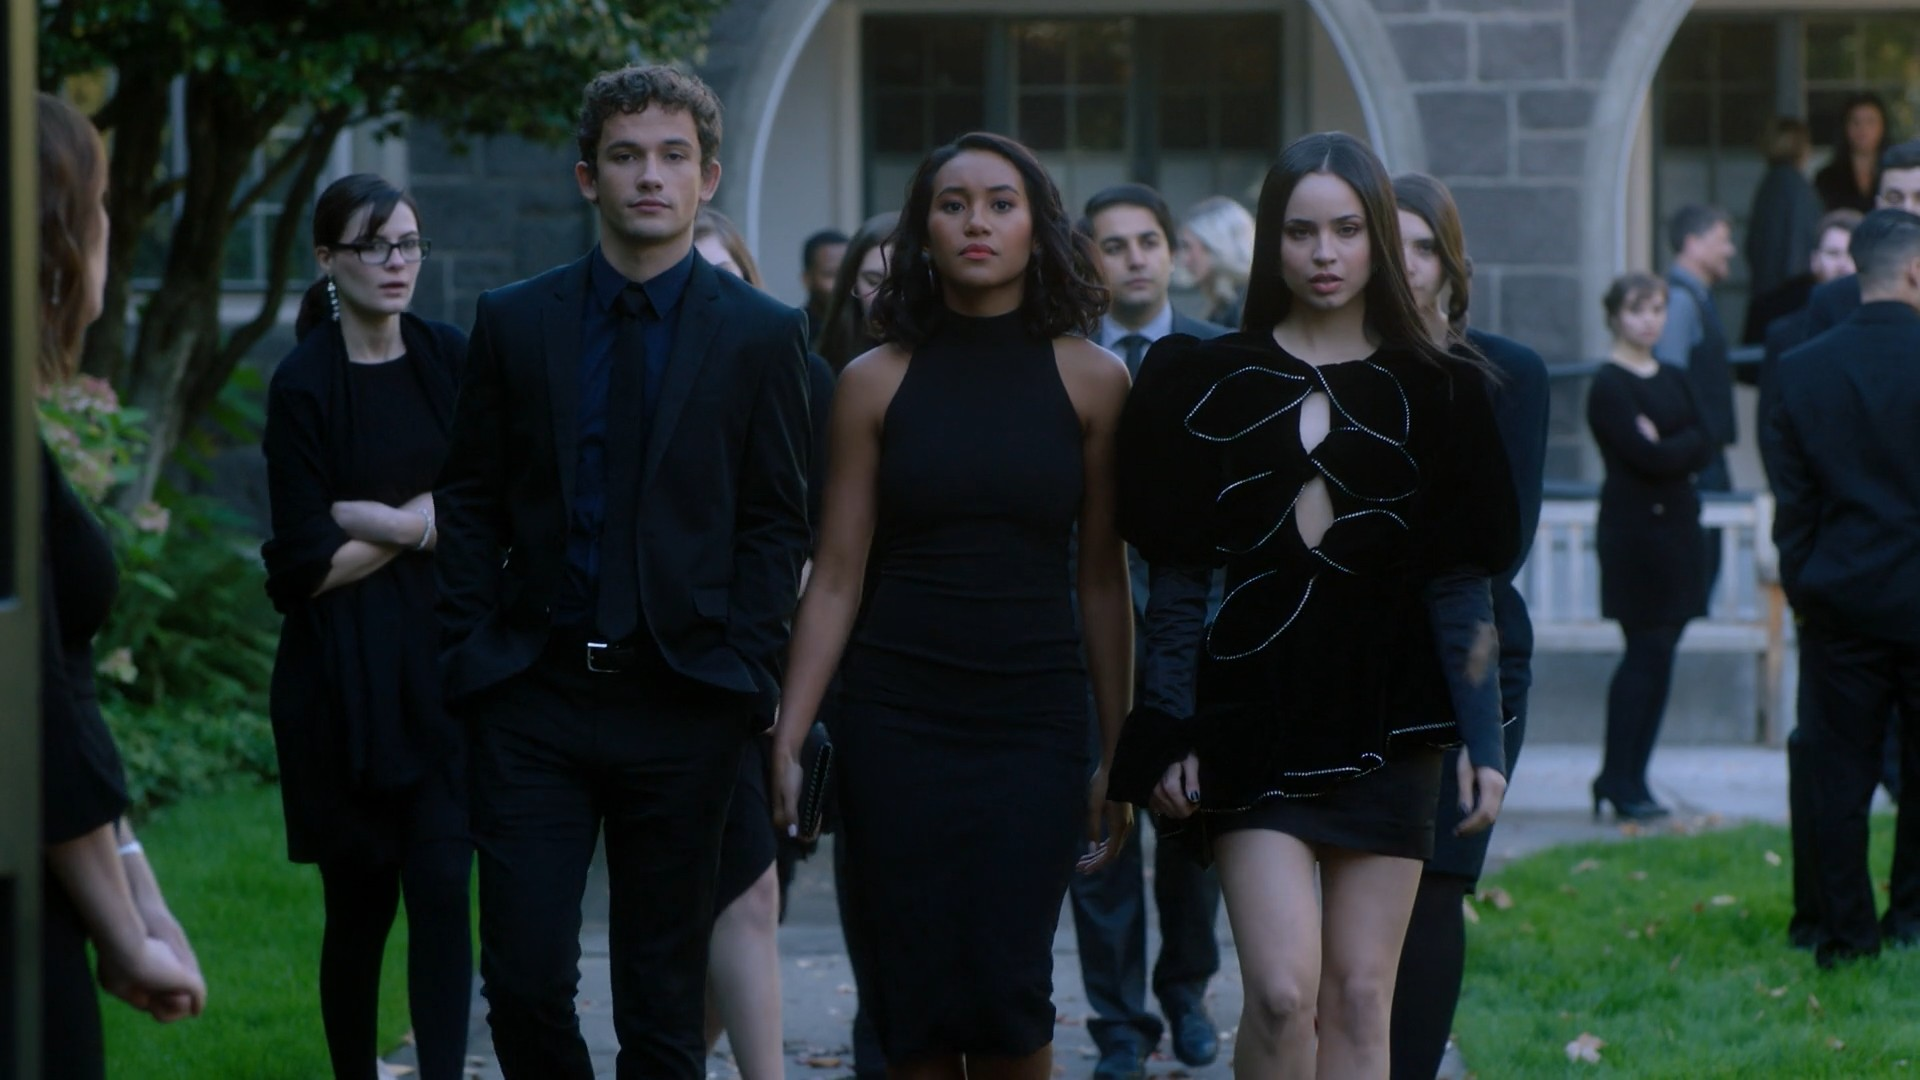 Pretty Little Liars: The Perfectionists- S01E02 Sasha Pieterse, Janel Parrish, Sofia Carson, Sydney Park